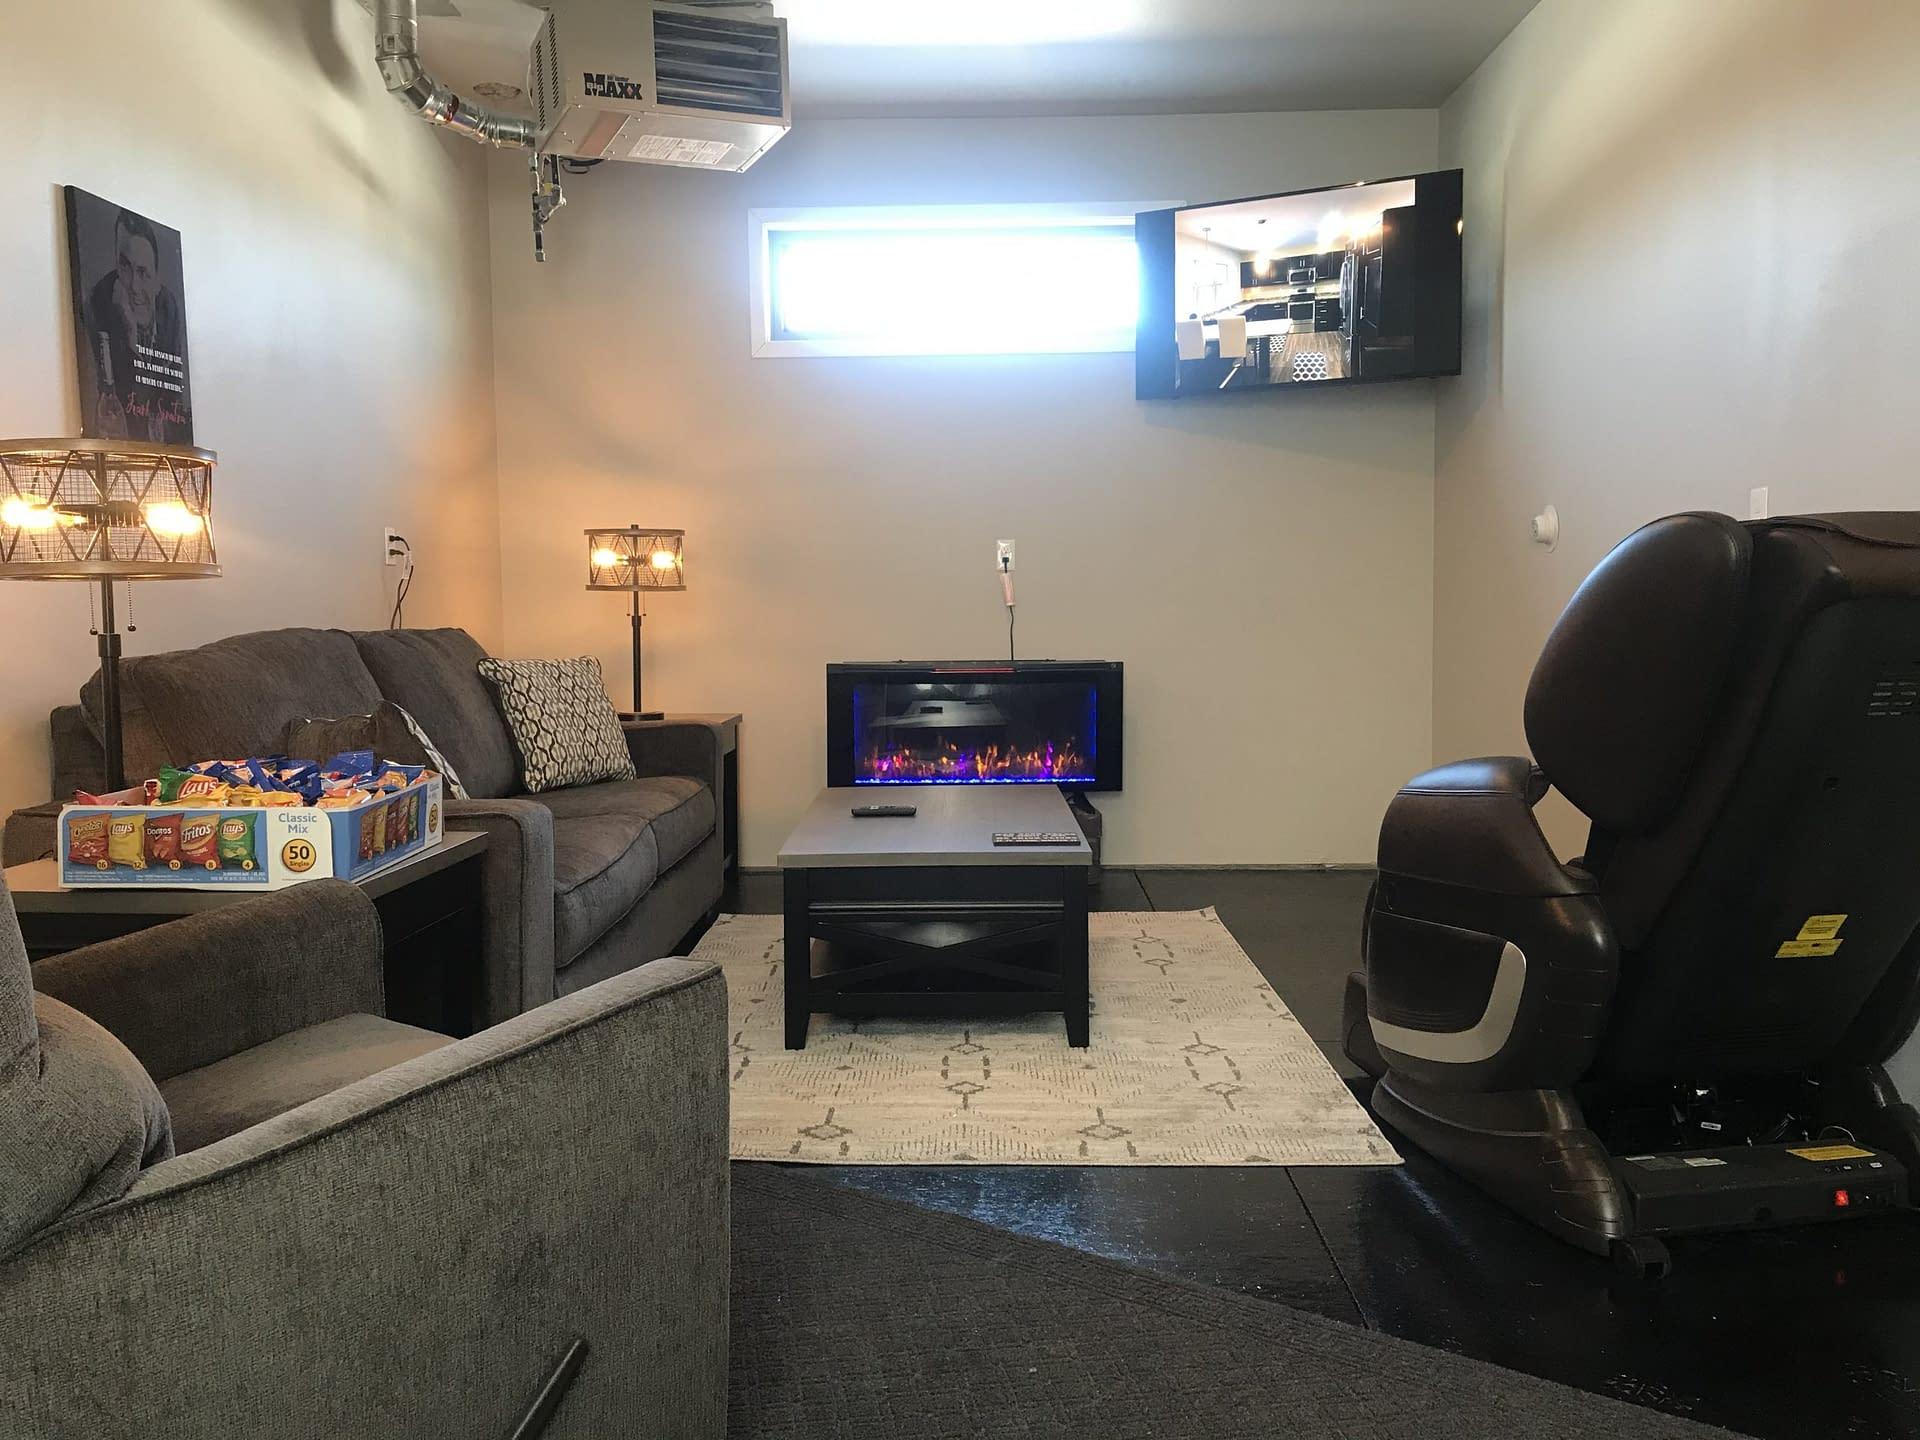 Empire Custom Townhome Rental Property with Man Cave